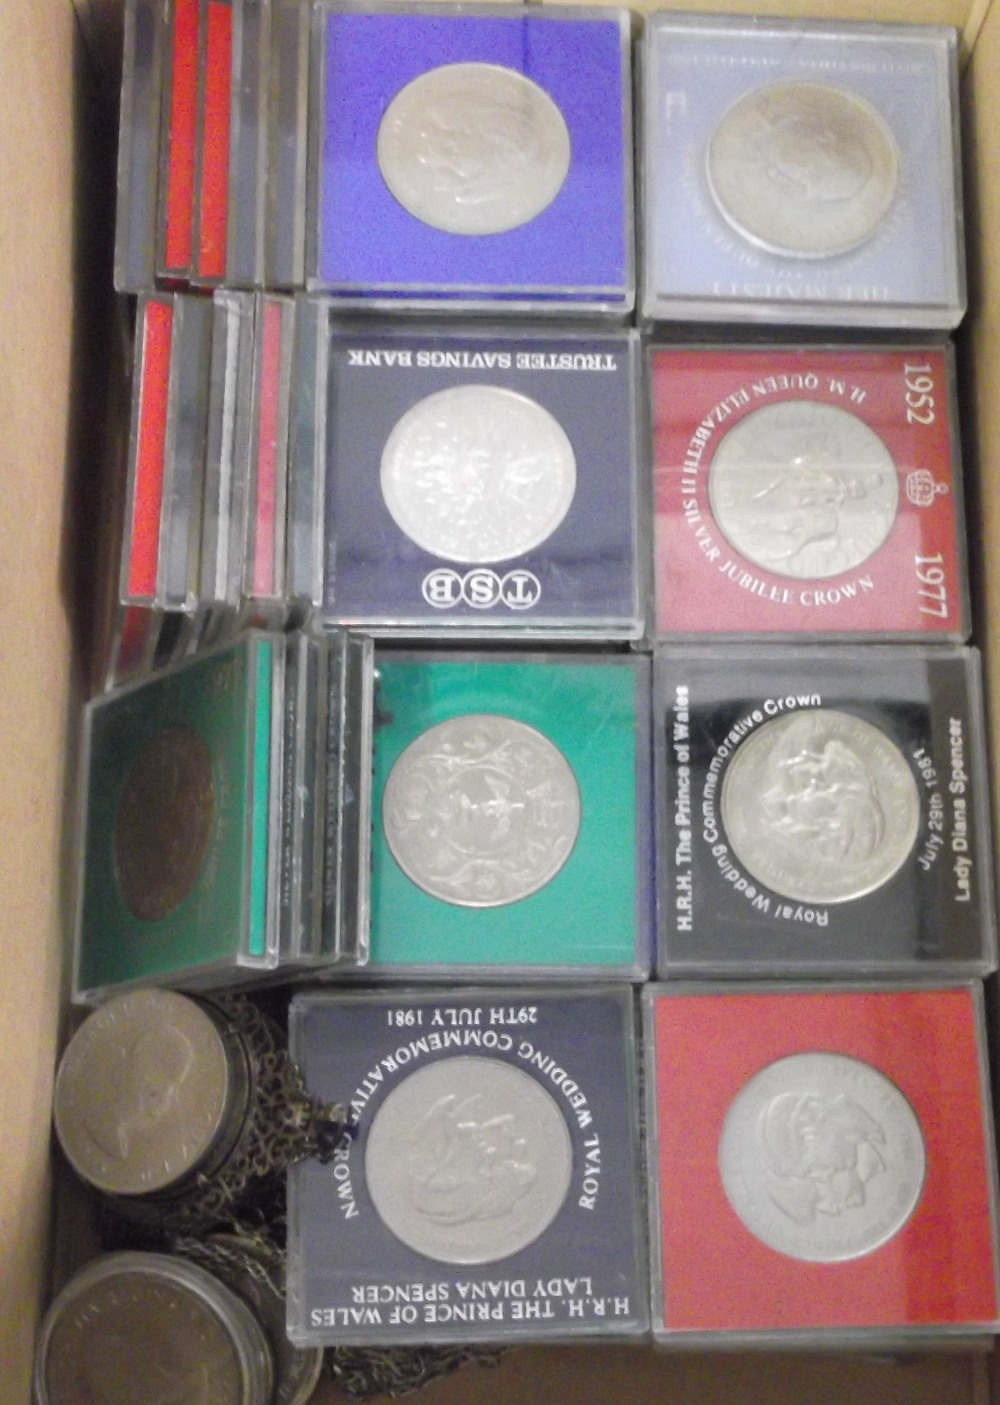 Lot 18 - Coins, GB, a collection of approx. 75 coins mostly GB commemorative crowns, several in original